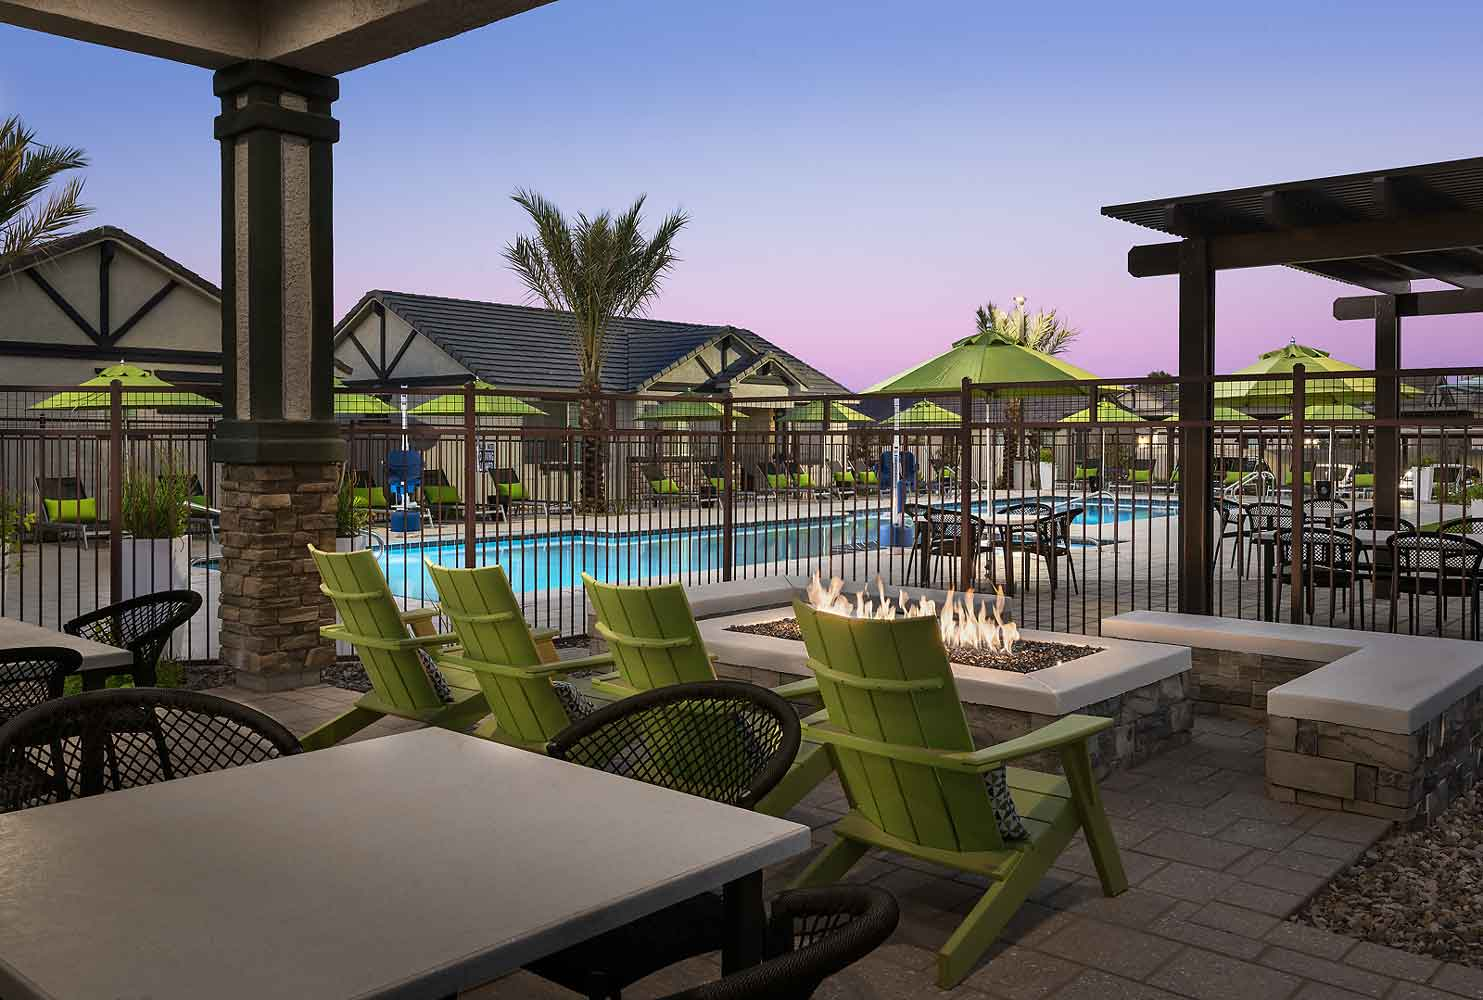 Fire Pit at Olive Marketplace Apartments in Glendale, AZ